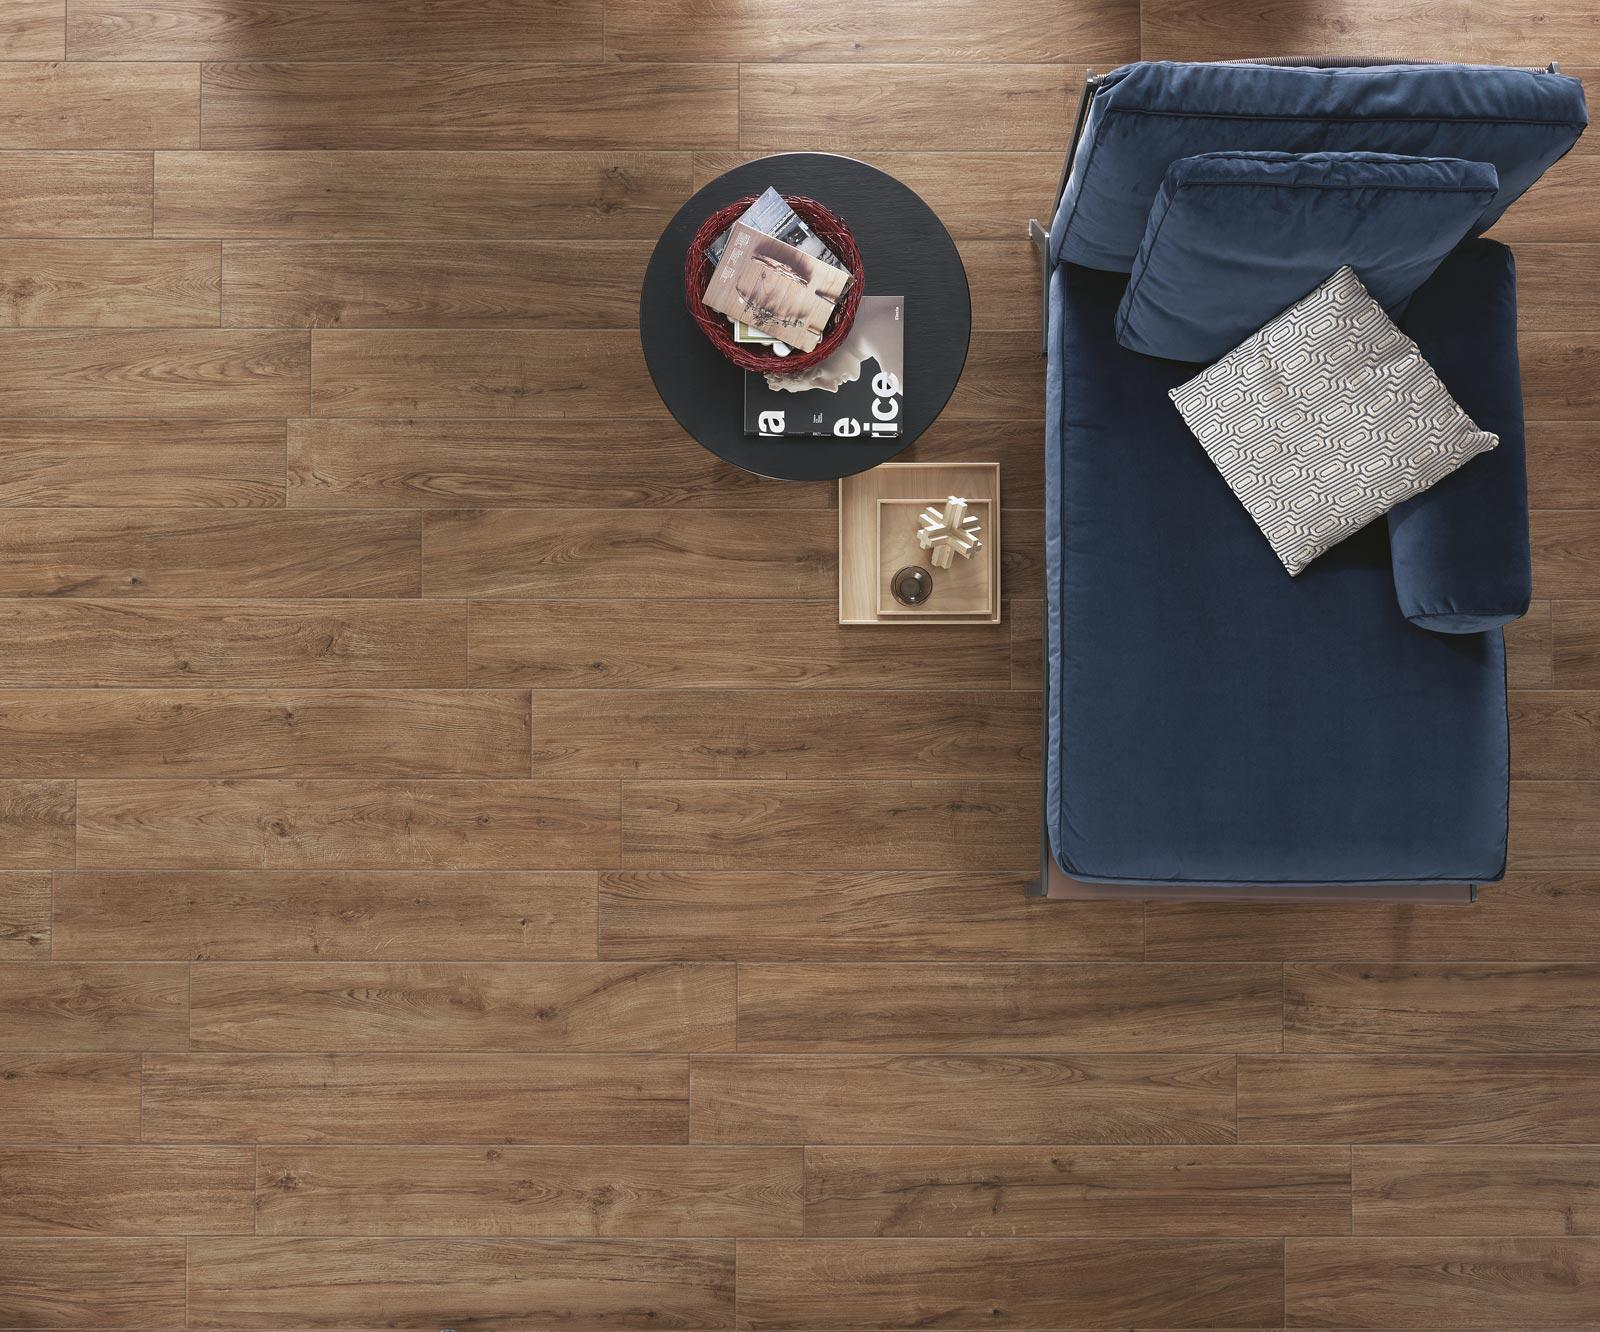 Ragno Gres Porcellanato Effetto Legno woodliving collection: wood effect stoneware tiles | ragno